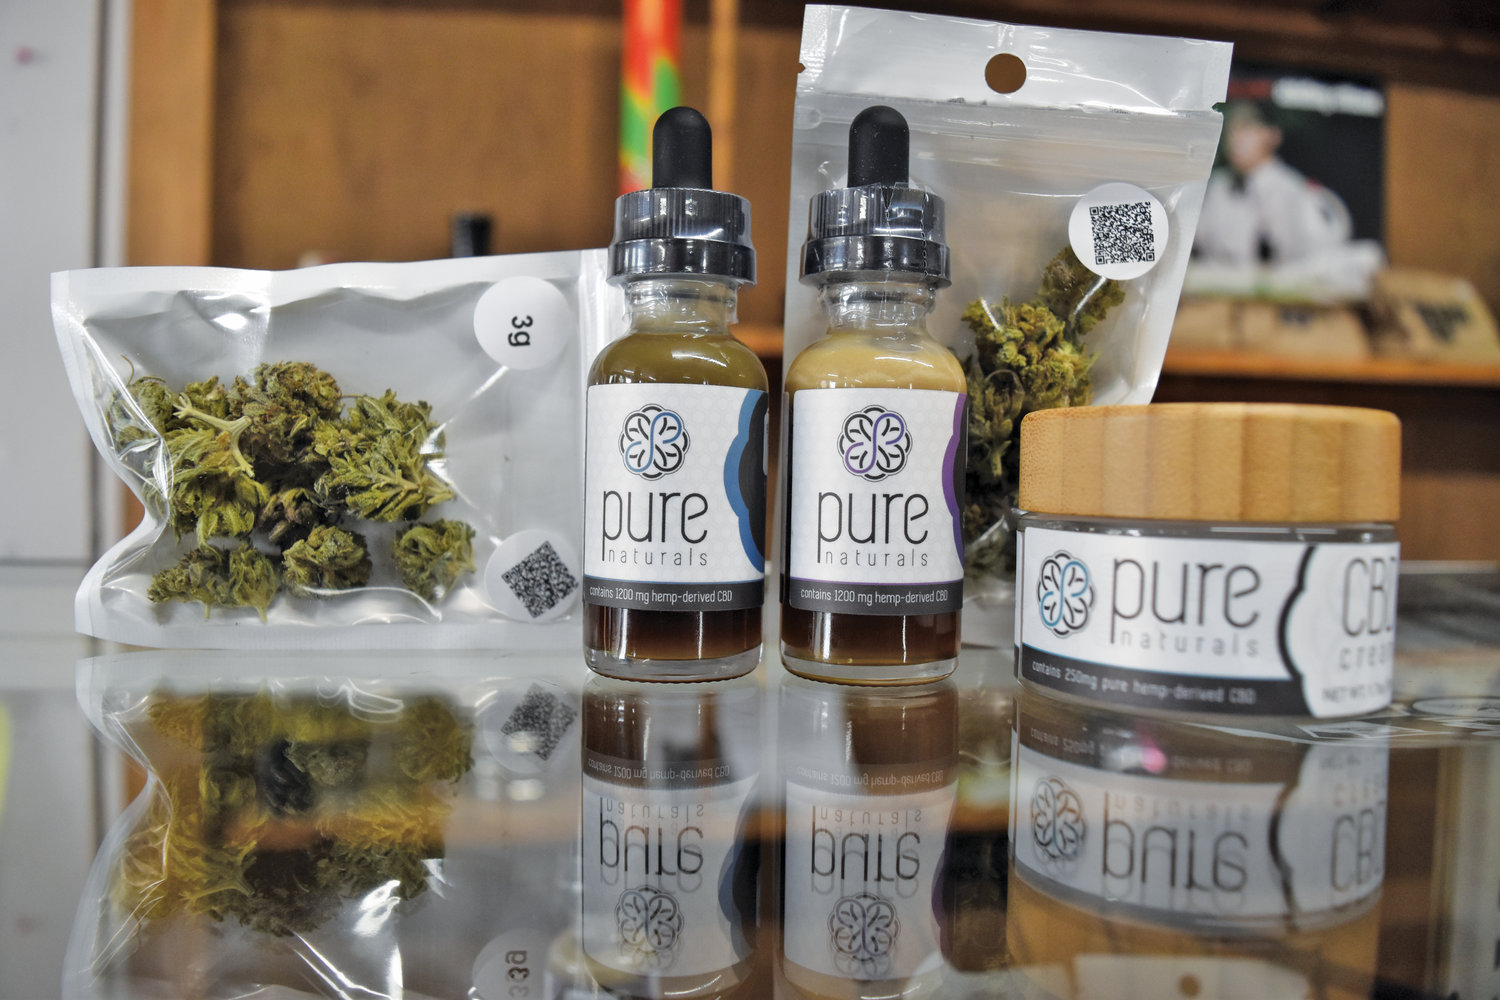 Trepidation and hope with CBD oil craze in Lansing   City Pulse